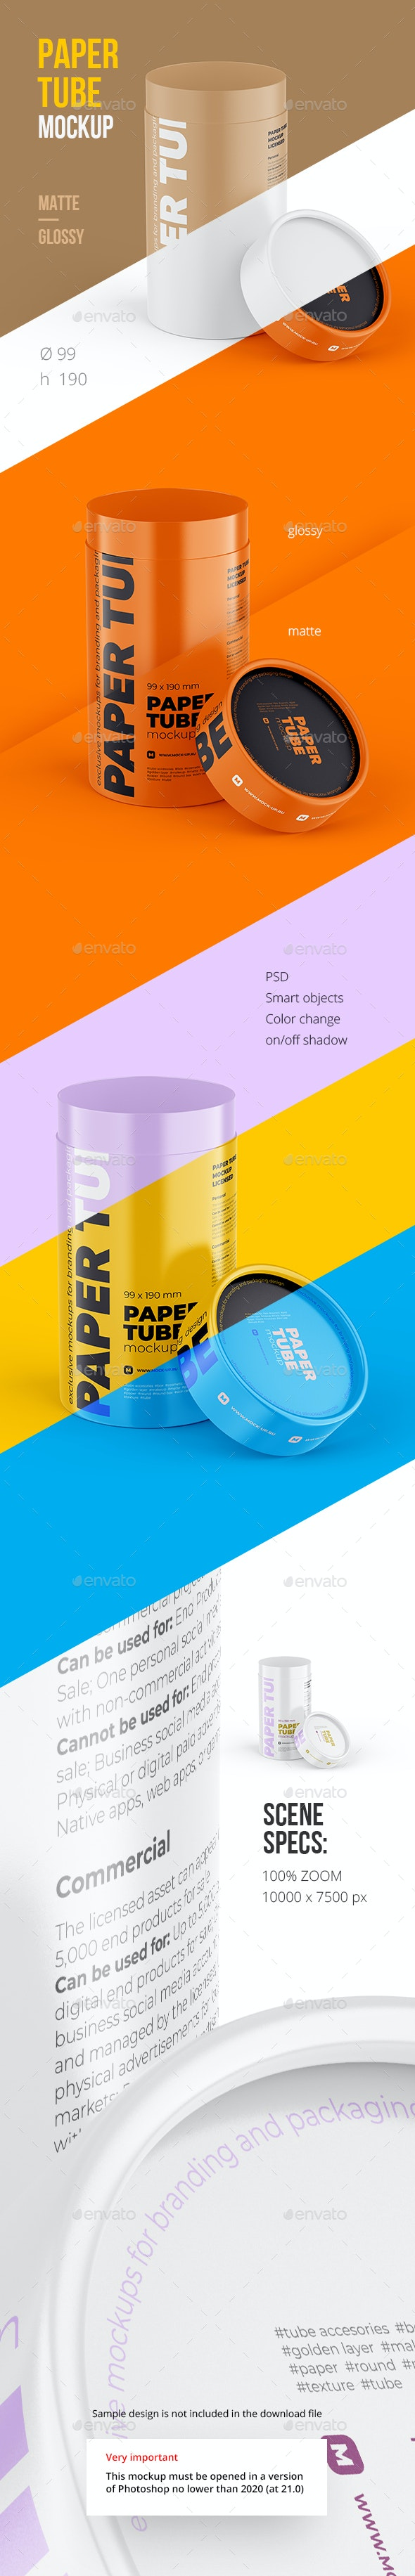 Opened Paper Tube Mockup 99x190mm - Food and Drink Packaging